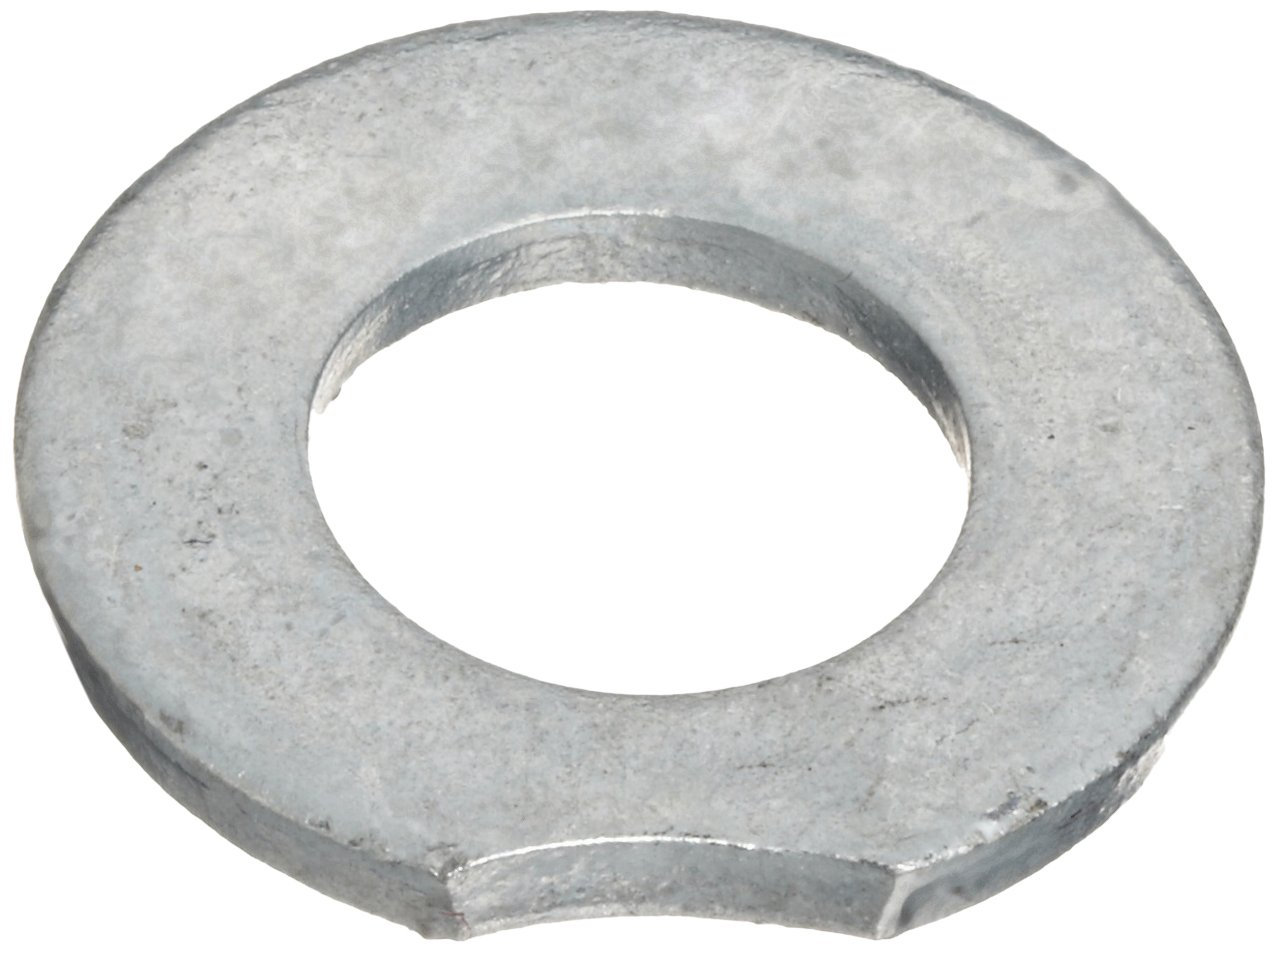 Steel Flat Washer, Hot-Dipped Galvanized Finish, ASTM F436 Type 1, 1/2'' Screw Size, 17/32'' ID, 1-1/16'' OD, 0.135'' Thick (Pack of 50)